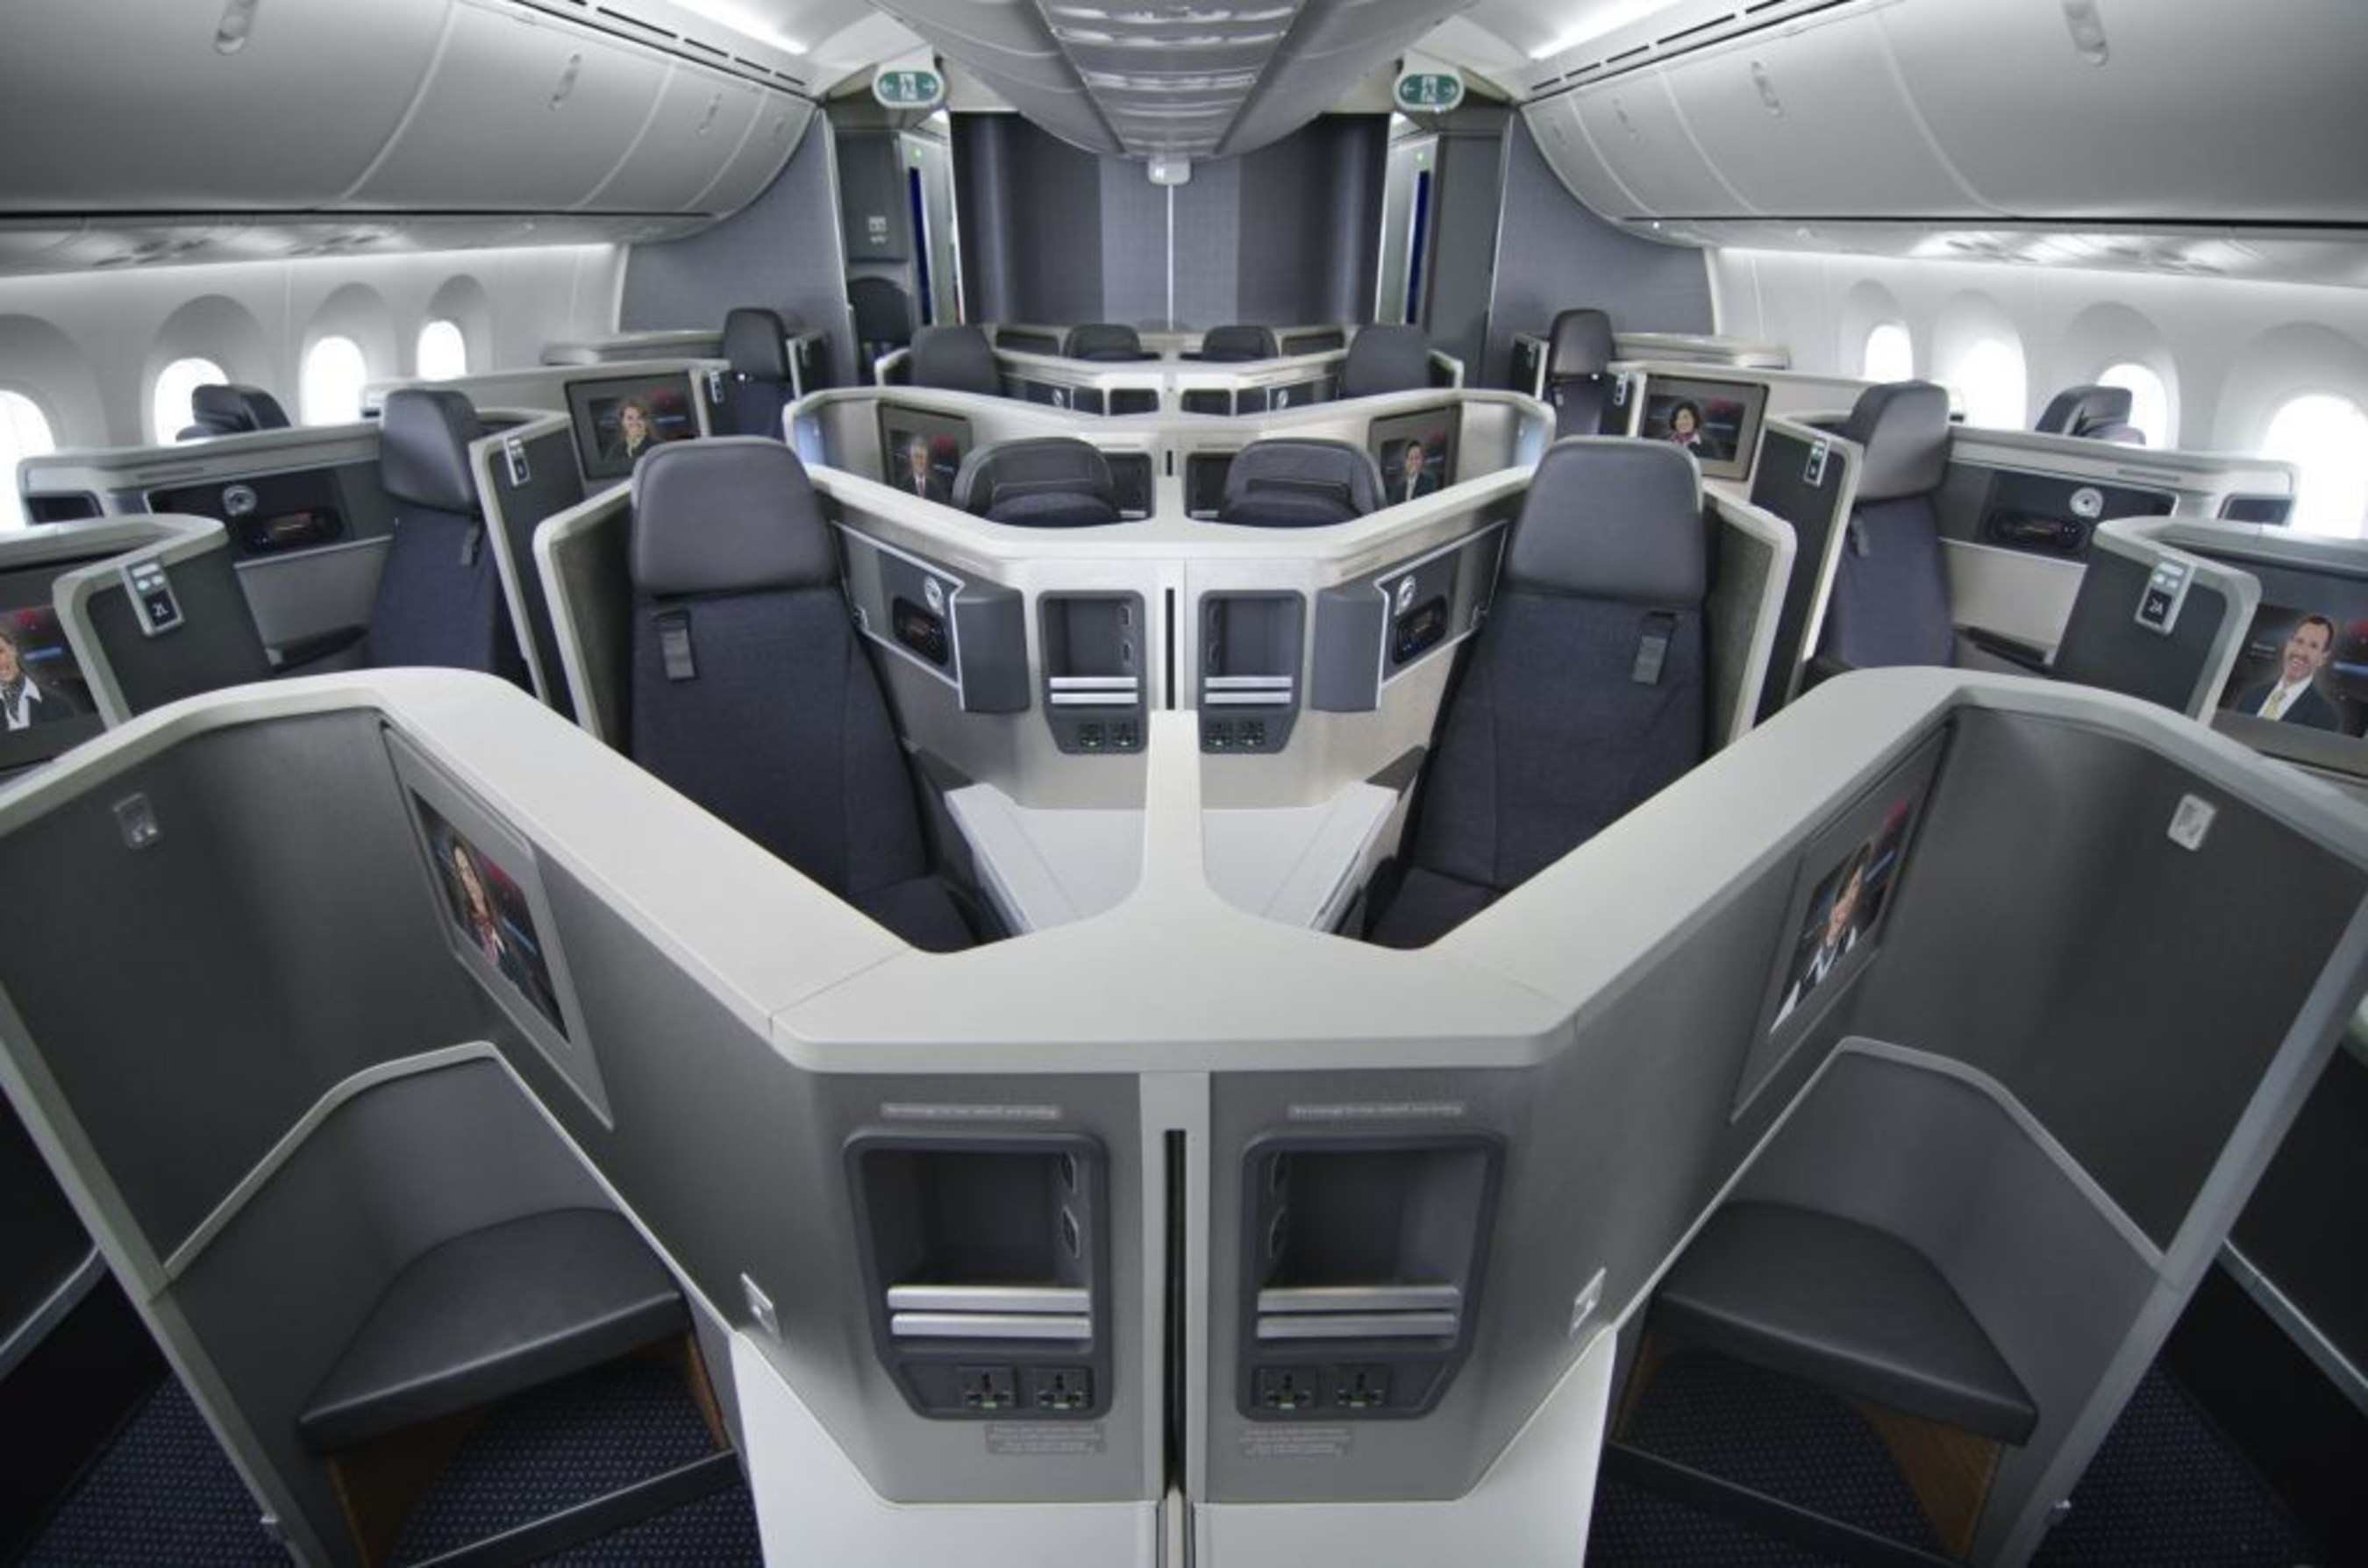 AMERICAN AIRLINES 787 BUSINESS CLASS